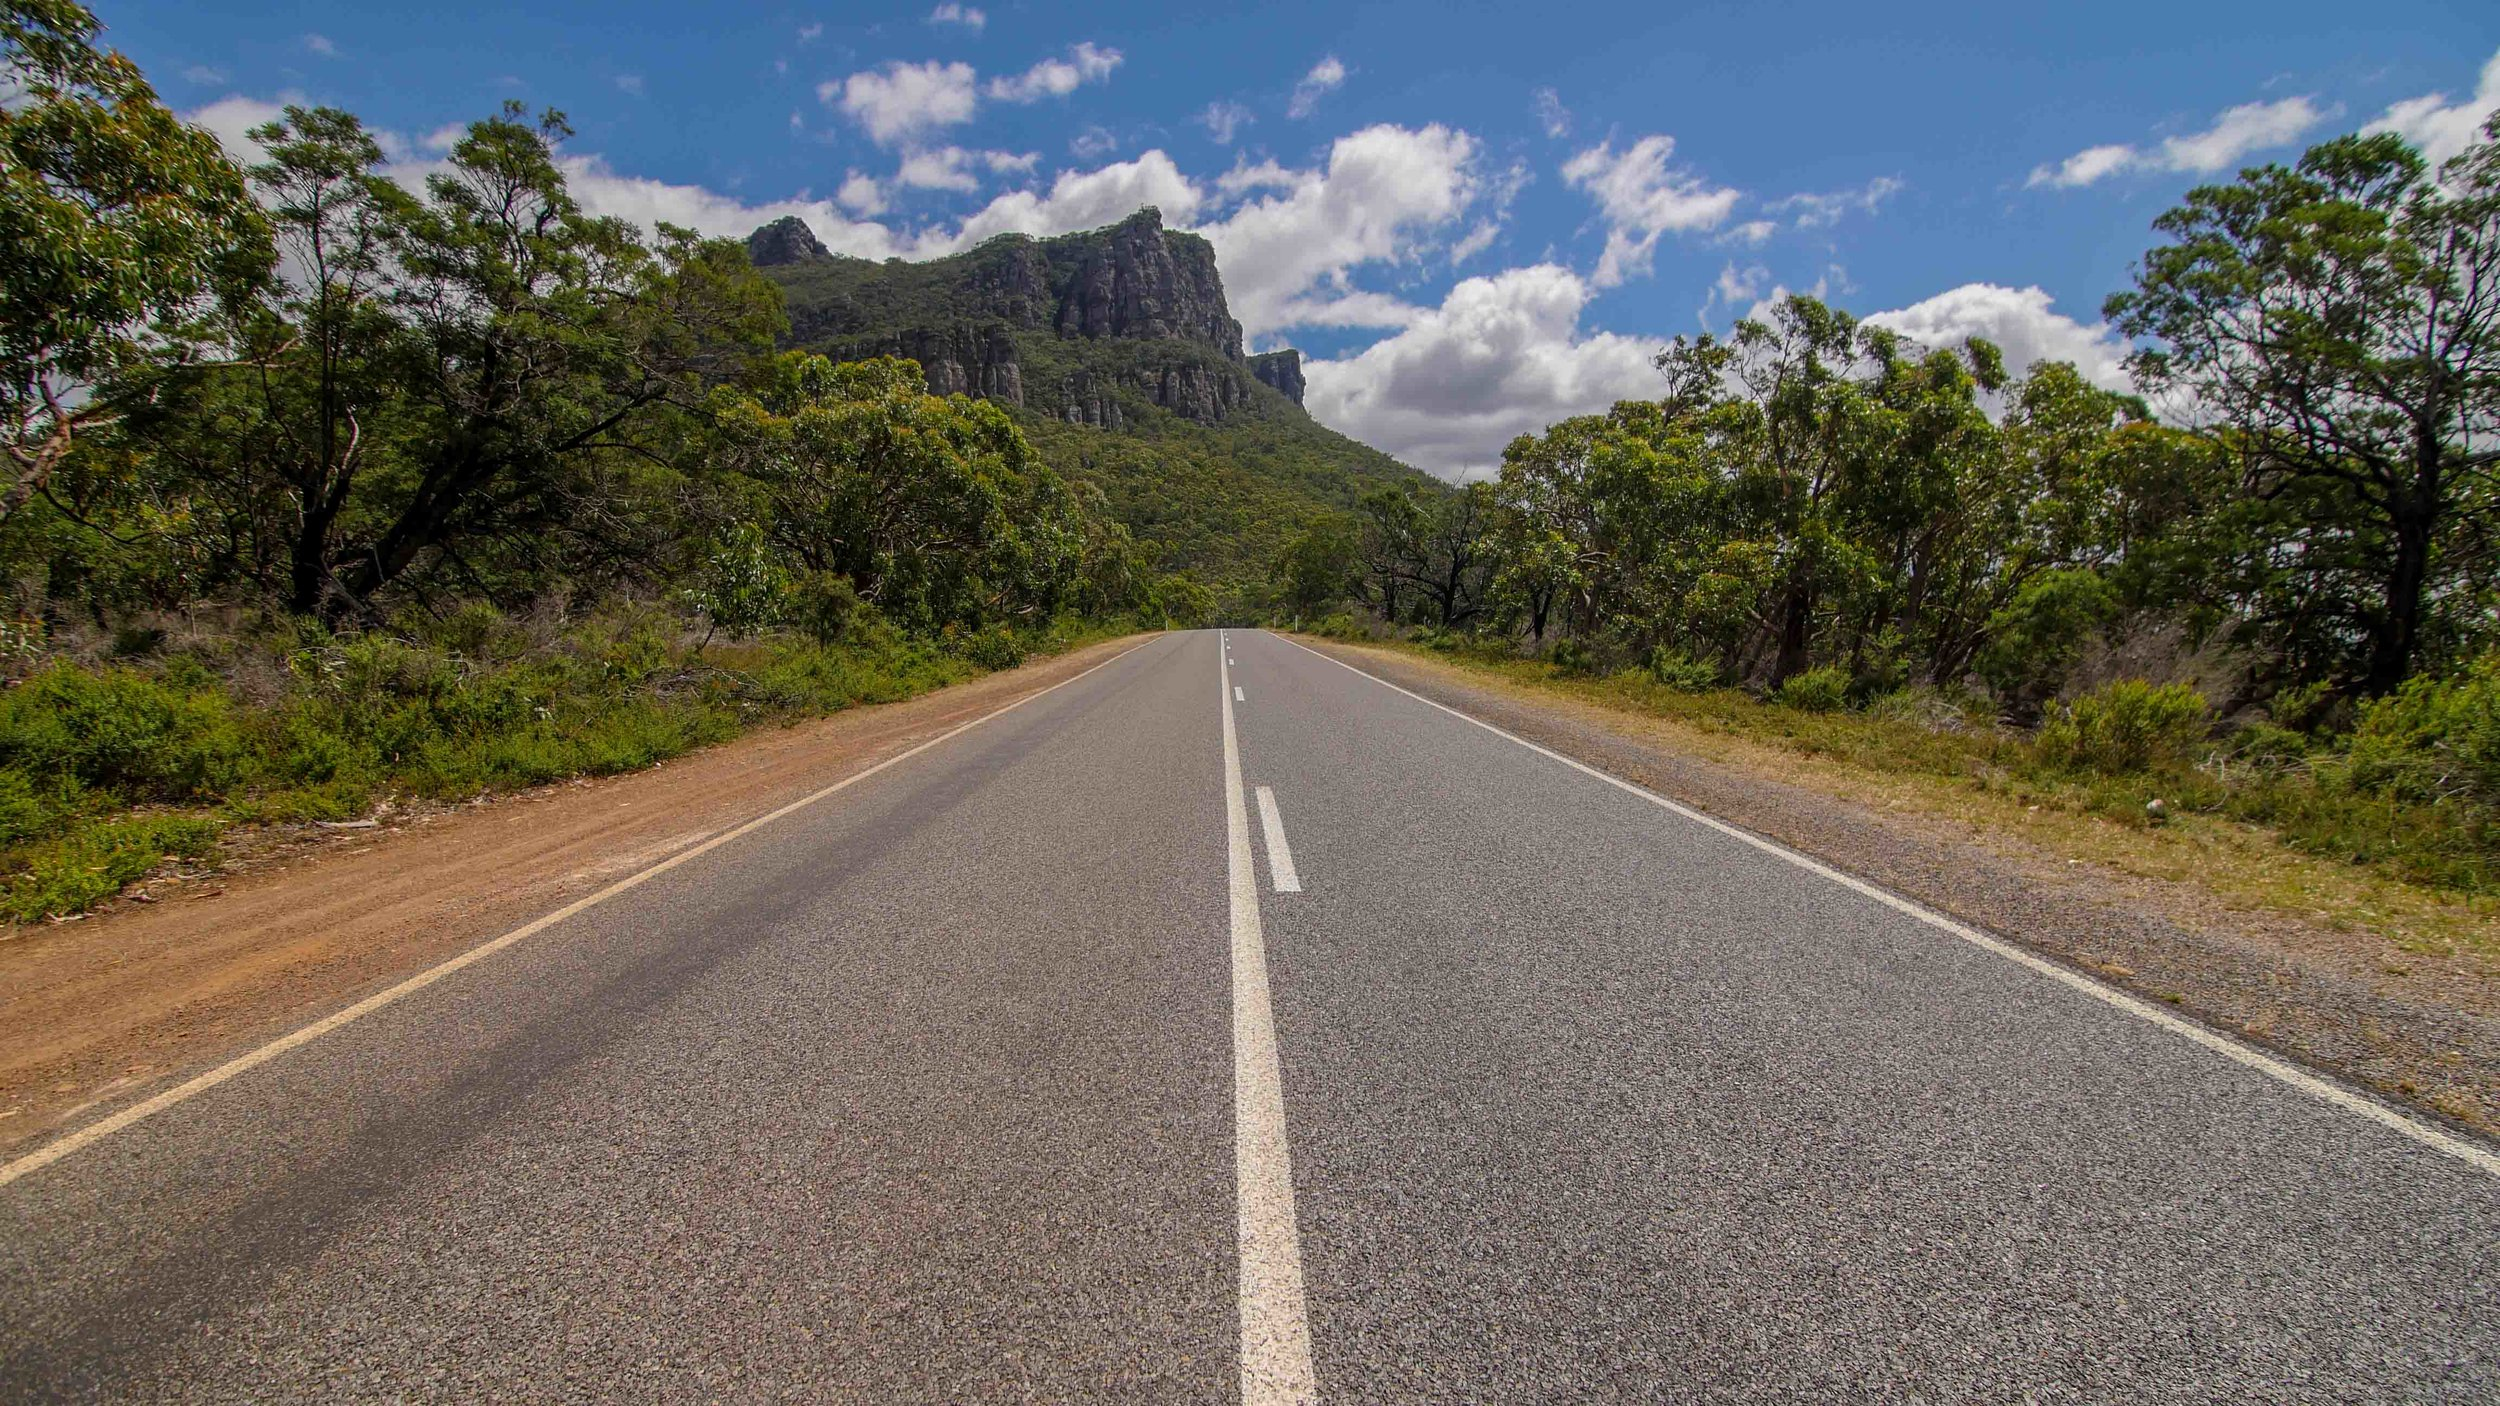 Entering the Grampians National Park